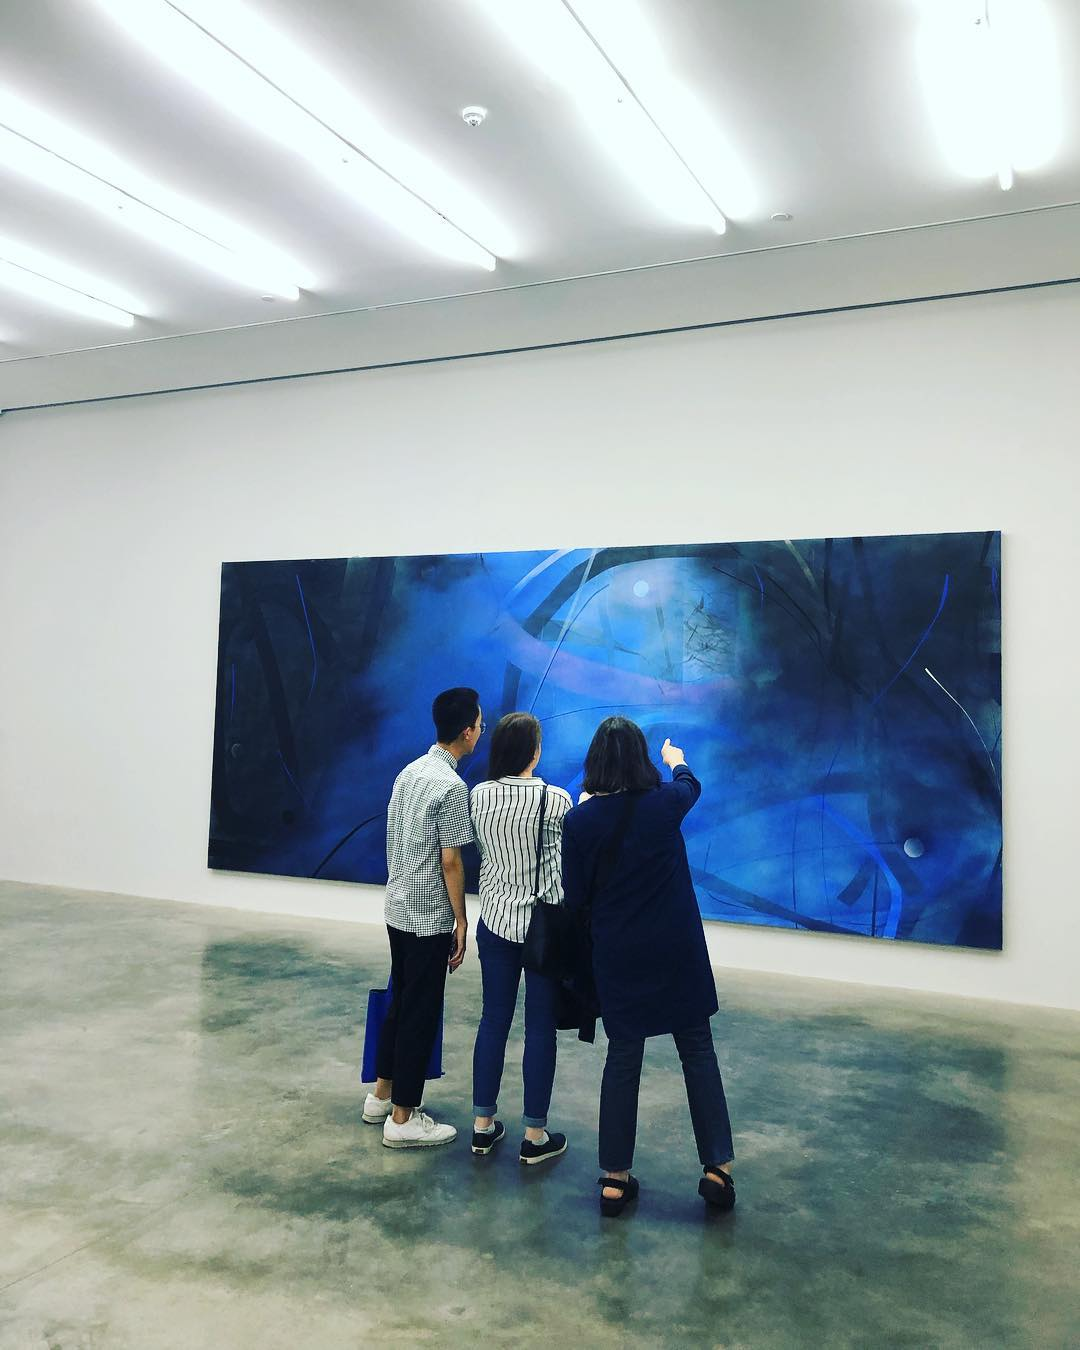 Elizabeth (right) with Ronald and Alison at White Cube art gallery in London viewing work by Zhou Li.